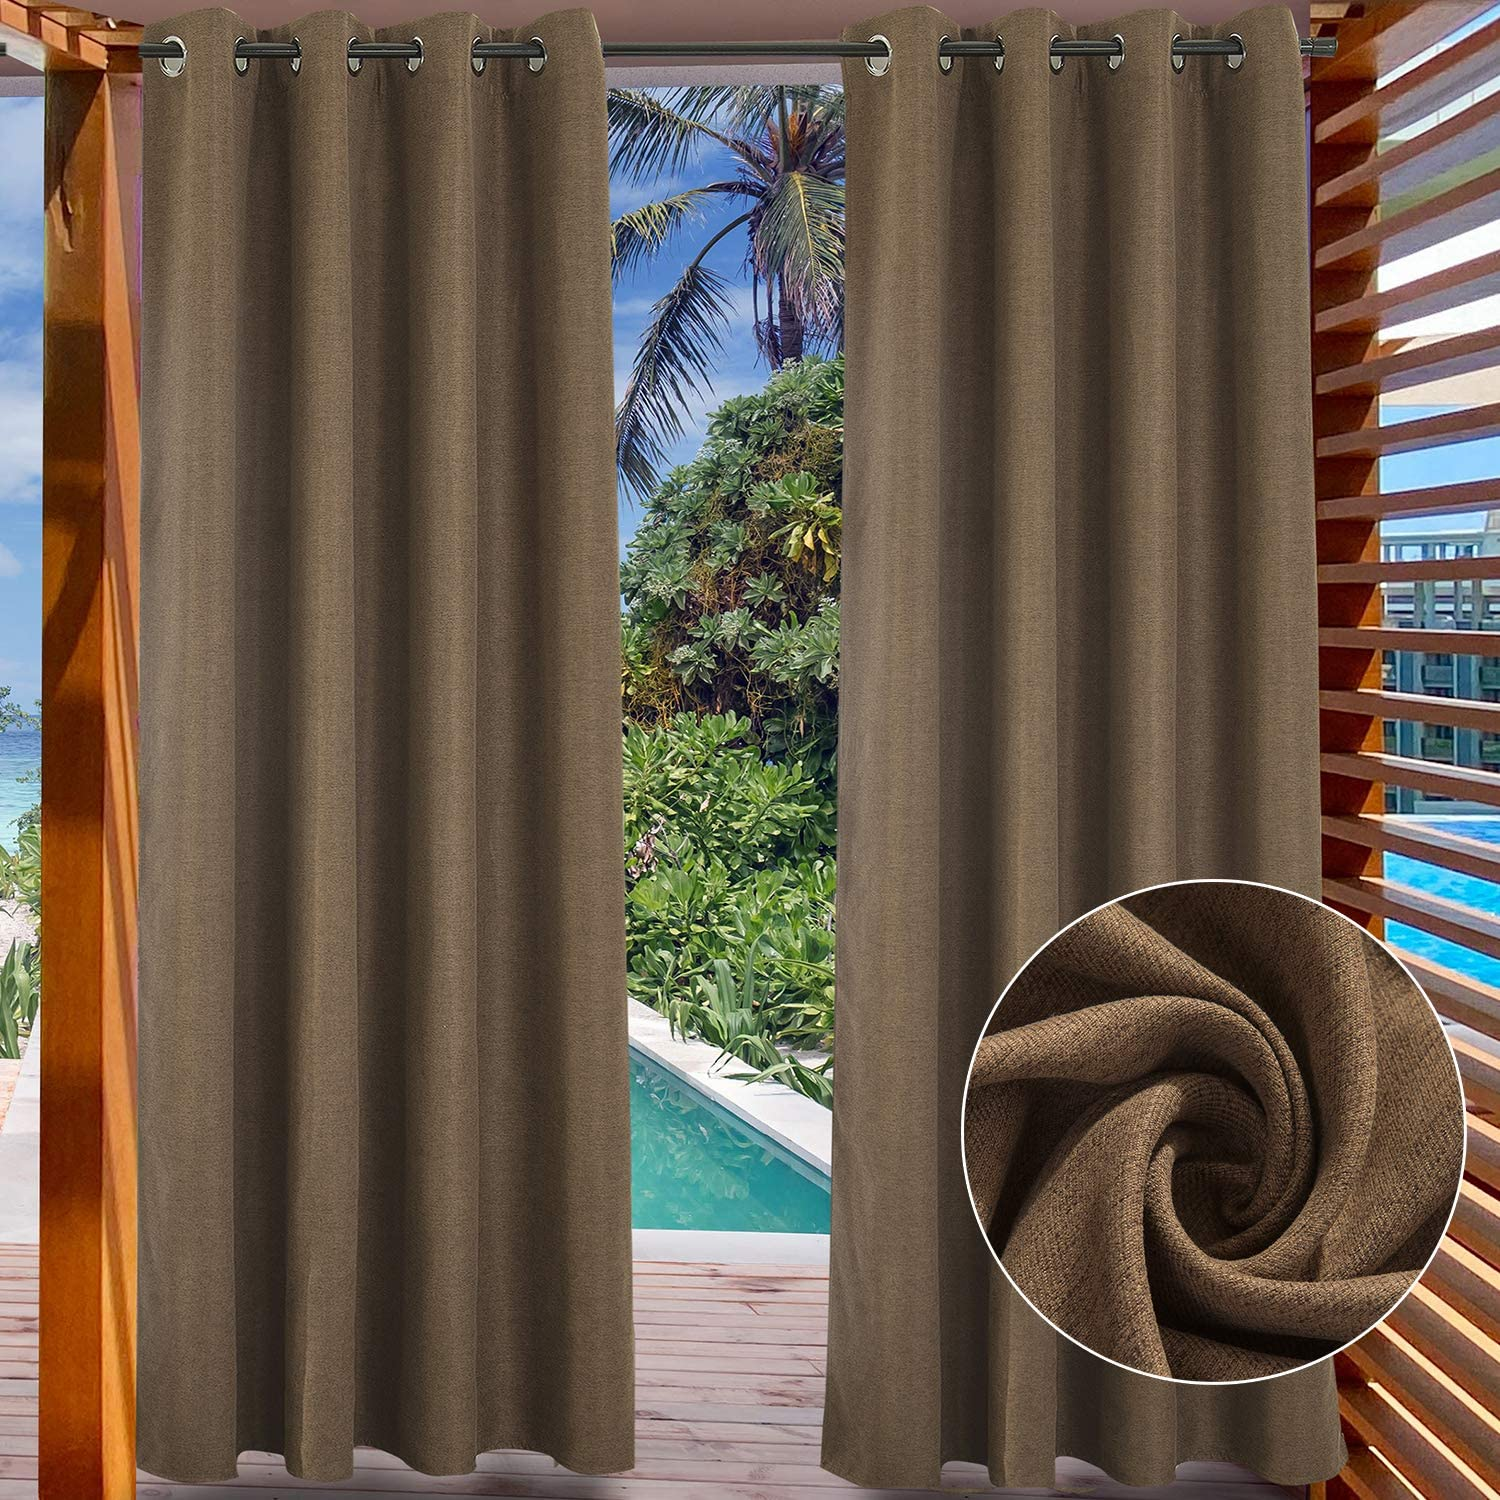 """LIFONDER Windproof Patio Outdoor Curtains - Grommet Indoor/Outdoor Blackout Drapes Blinds Pergola Curtain Panels Cabana Shade Draperies, Coffee Brown, 52"""" Width by 108"""" Length, 1 Piece 52""""W X 108"""" L Coffee Brown"""